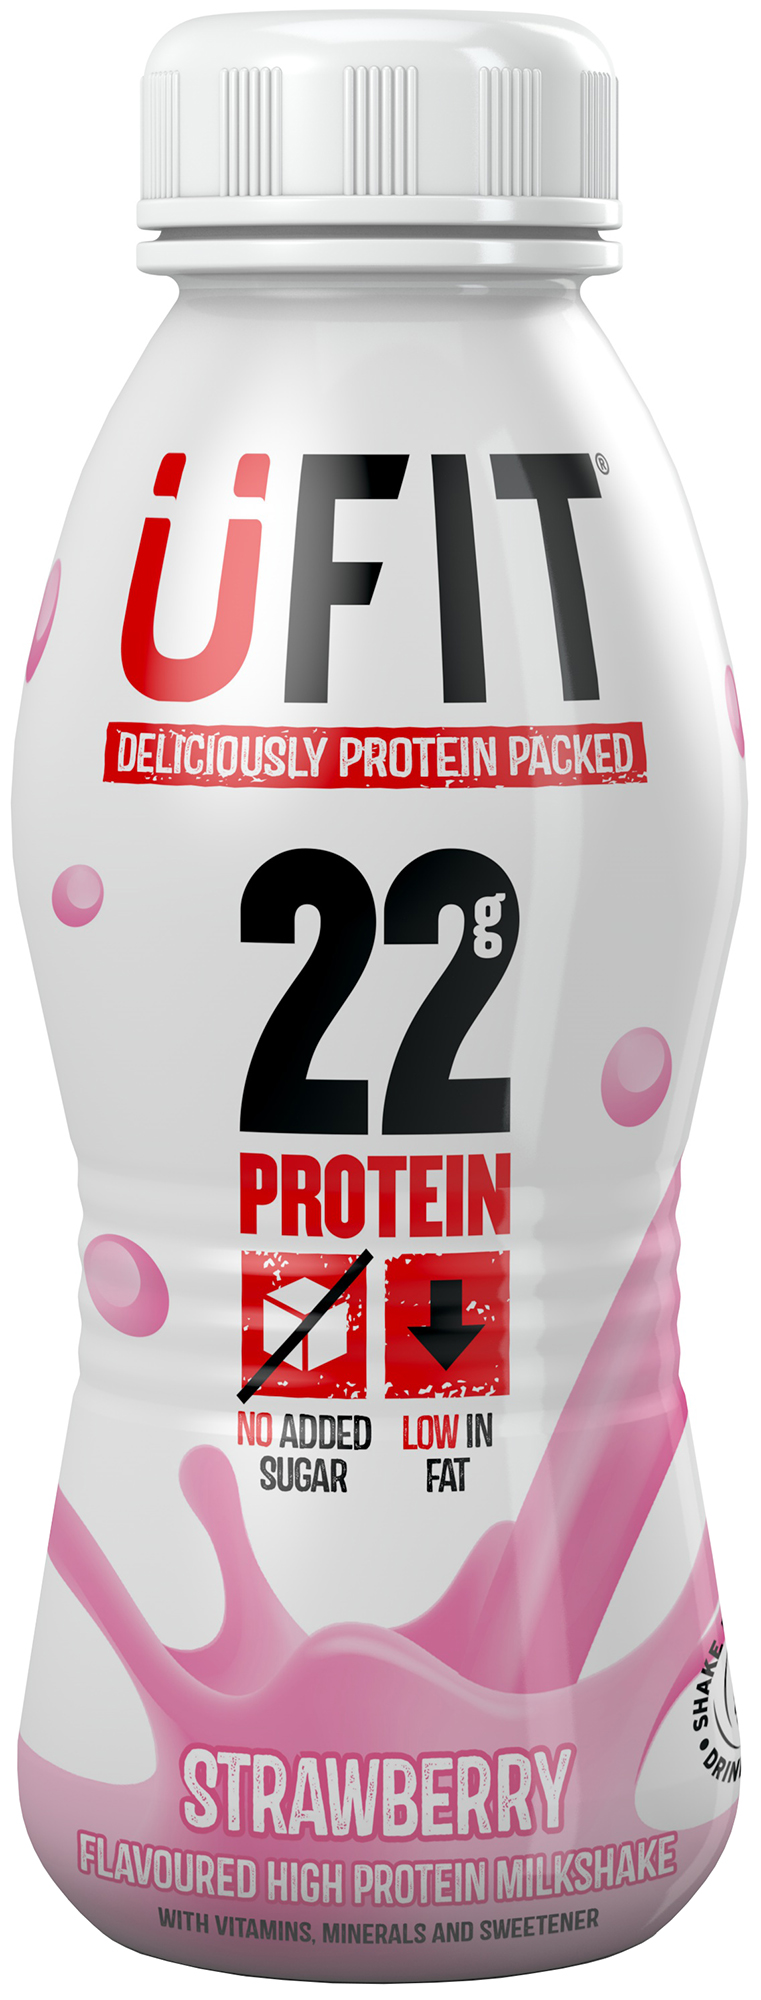 UFIT High Protein Drink (310ml) | Protein bar and powder